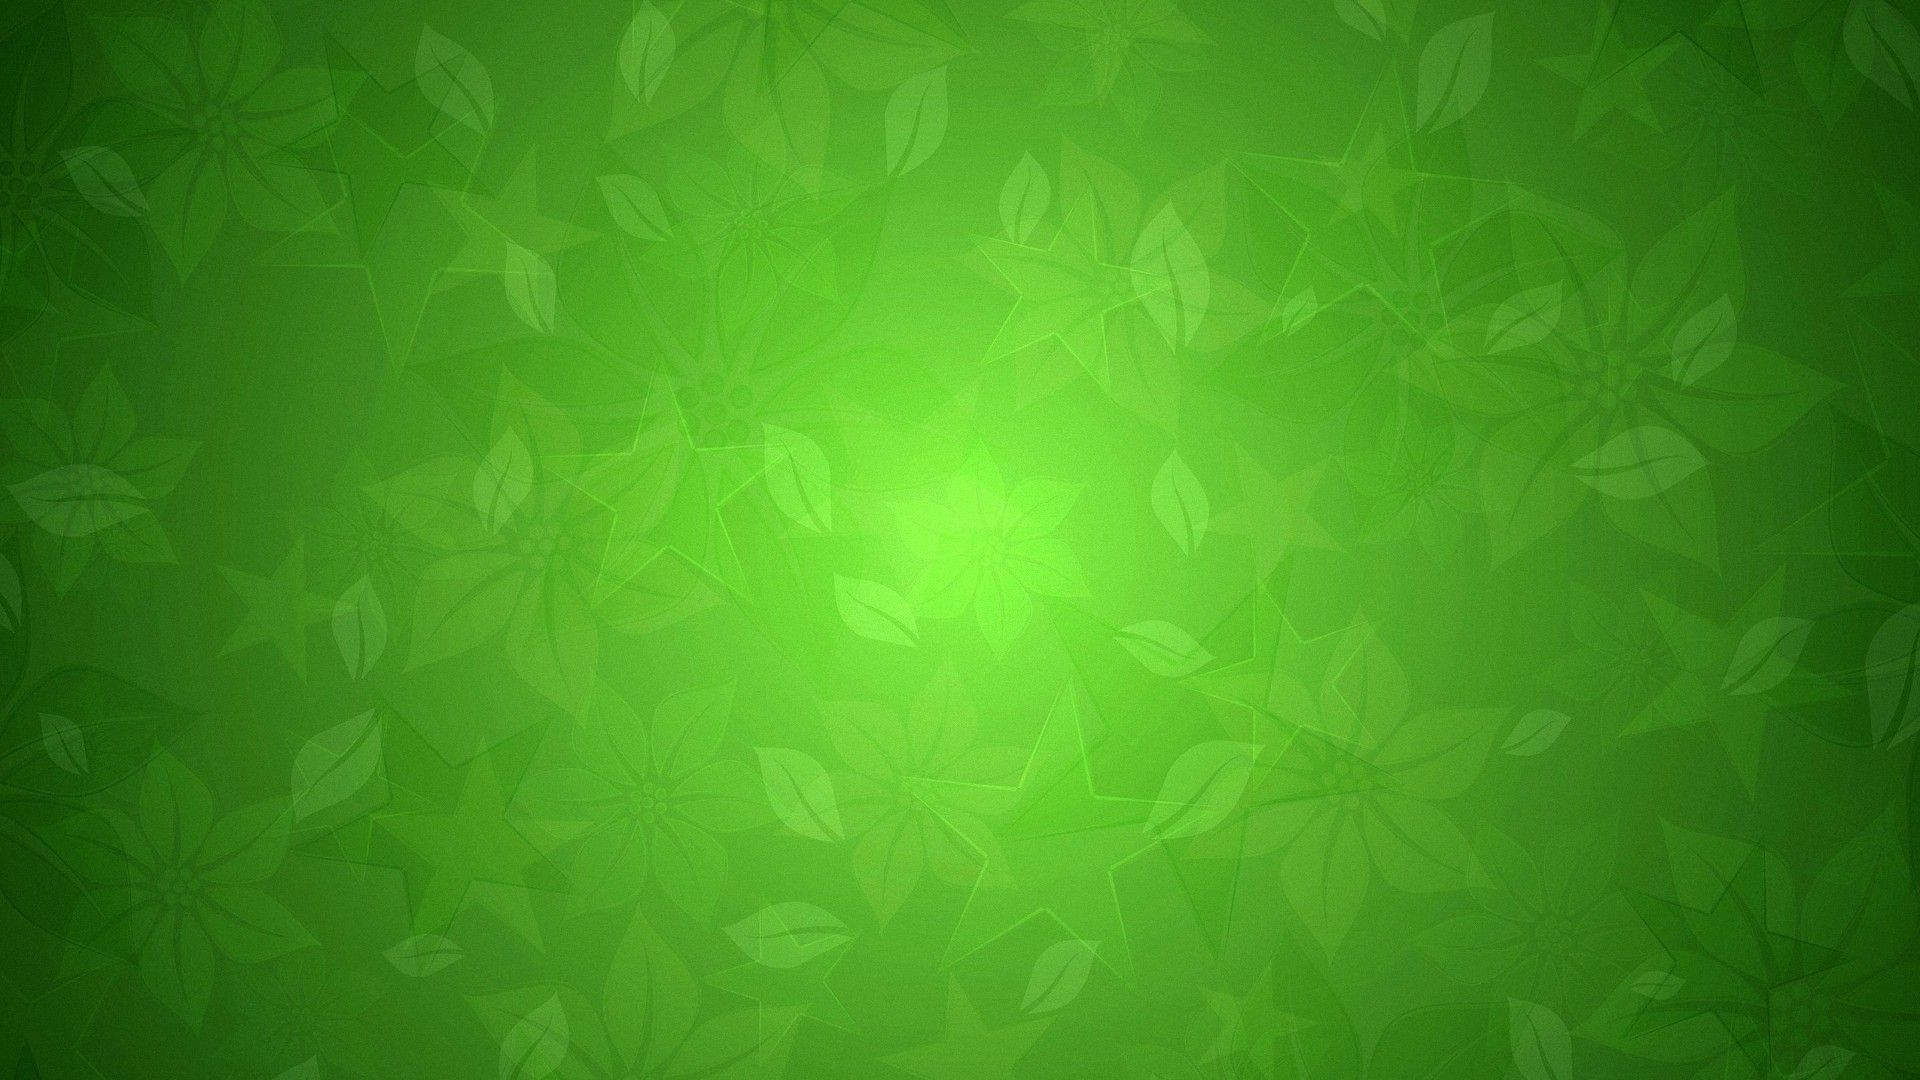 Abstract Green Floral Texture Backgrounds Full Hd Wallpapers